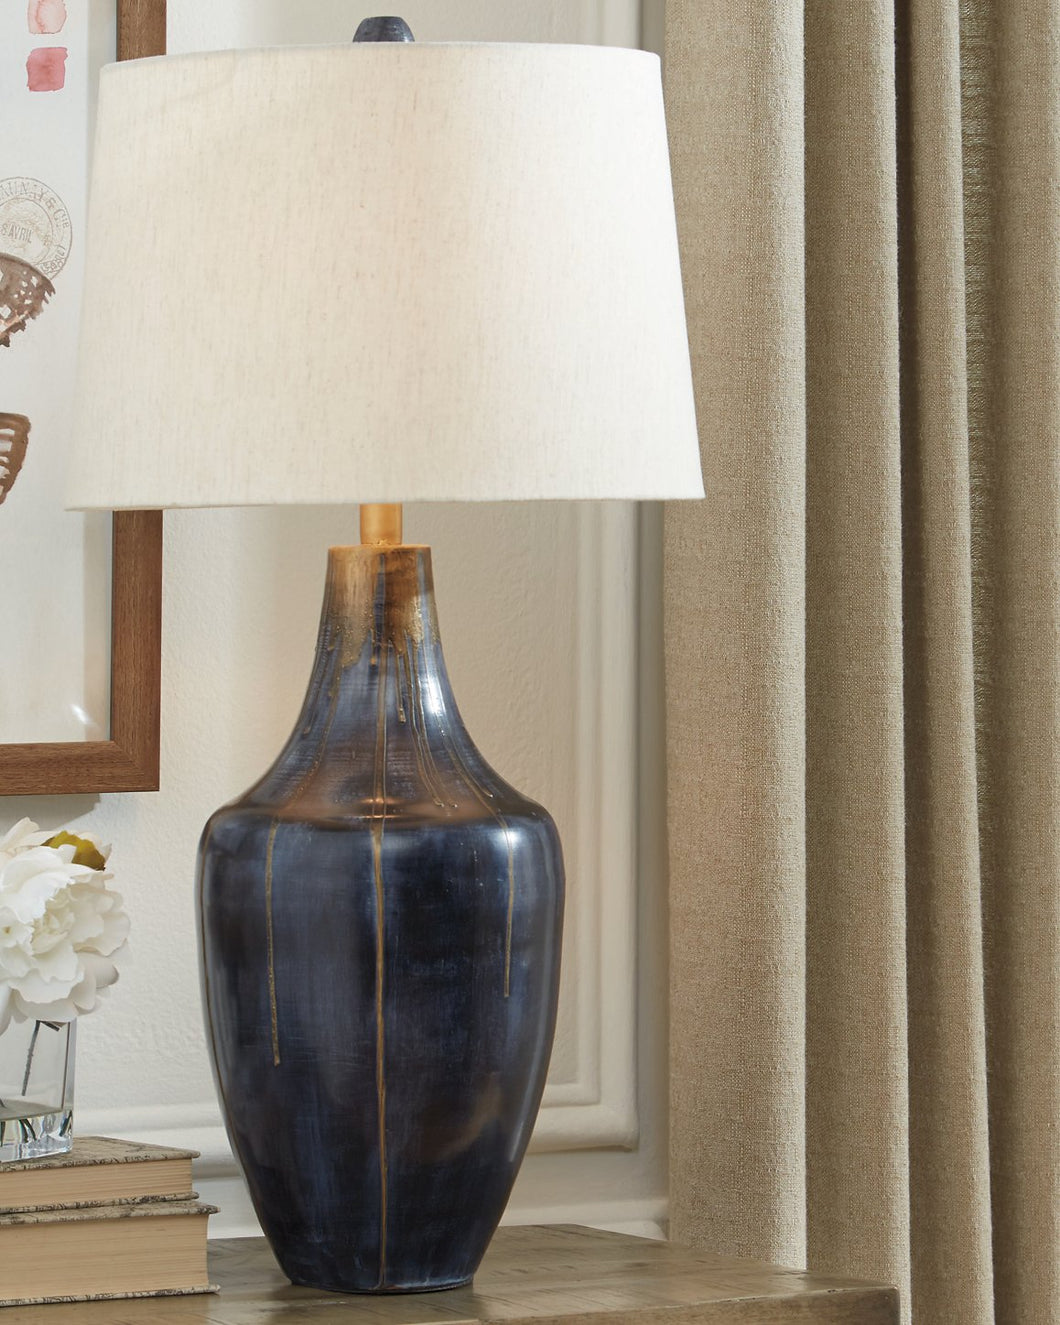 Evania Signature Design by Ashley Table Lamp image